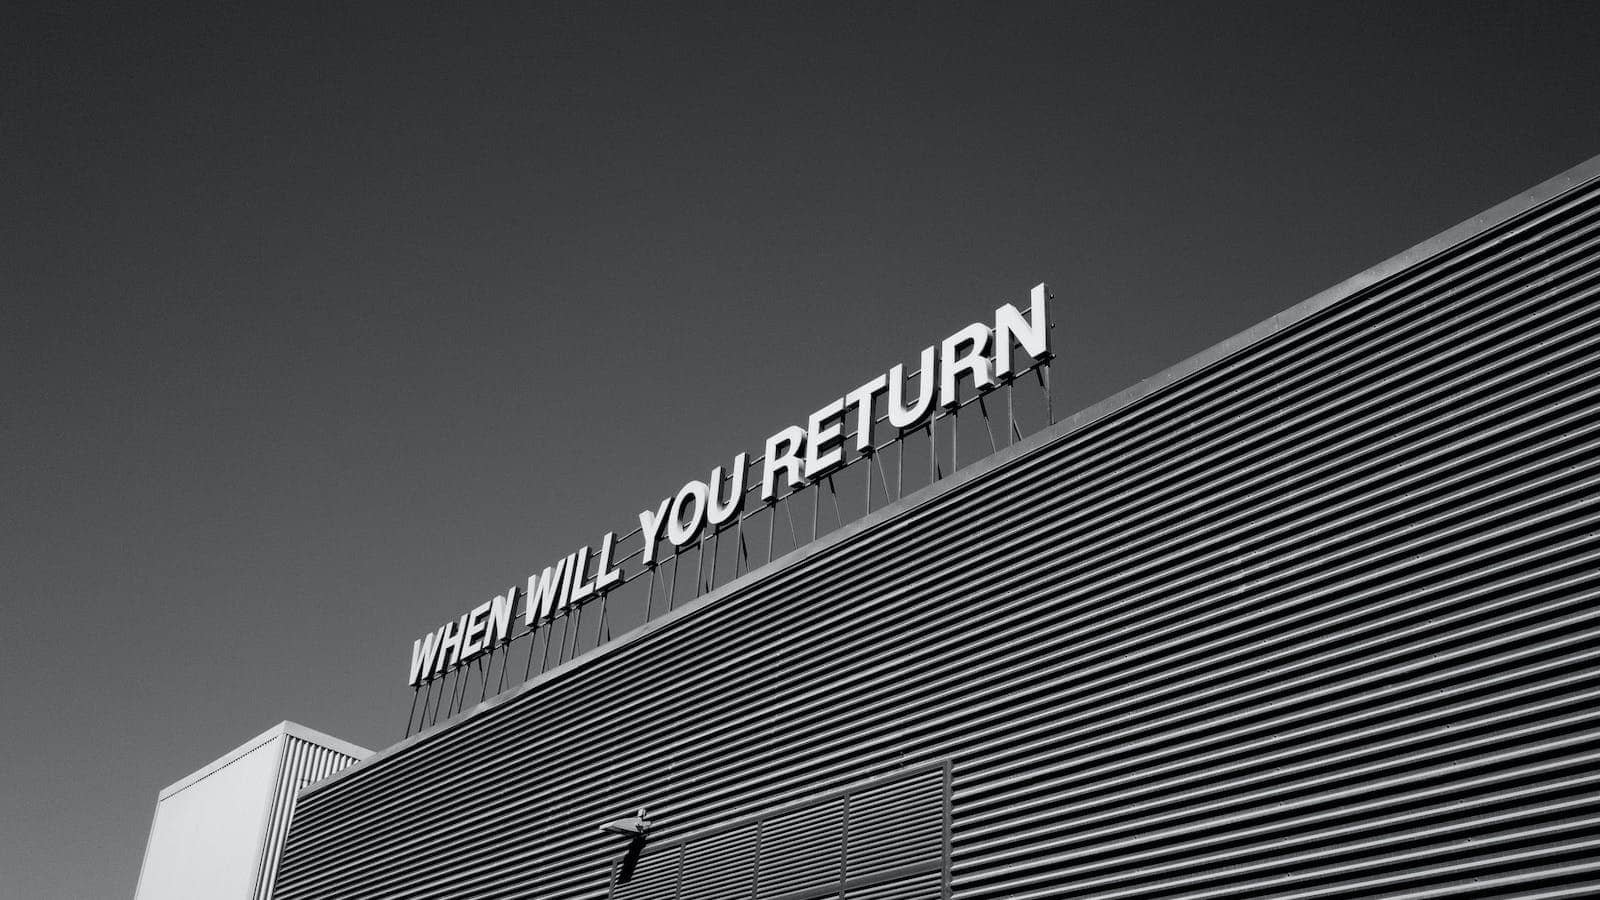 When you will return?